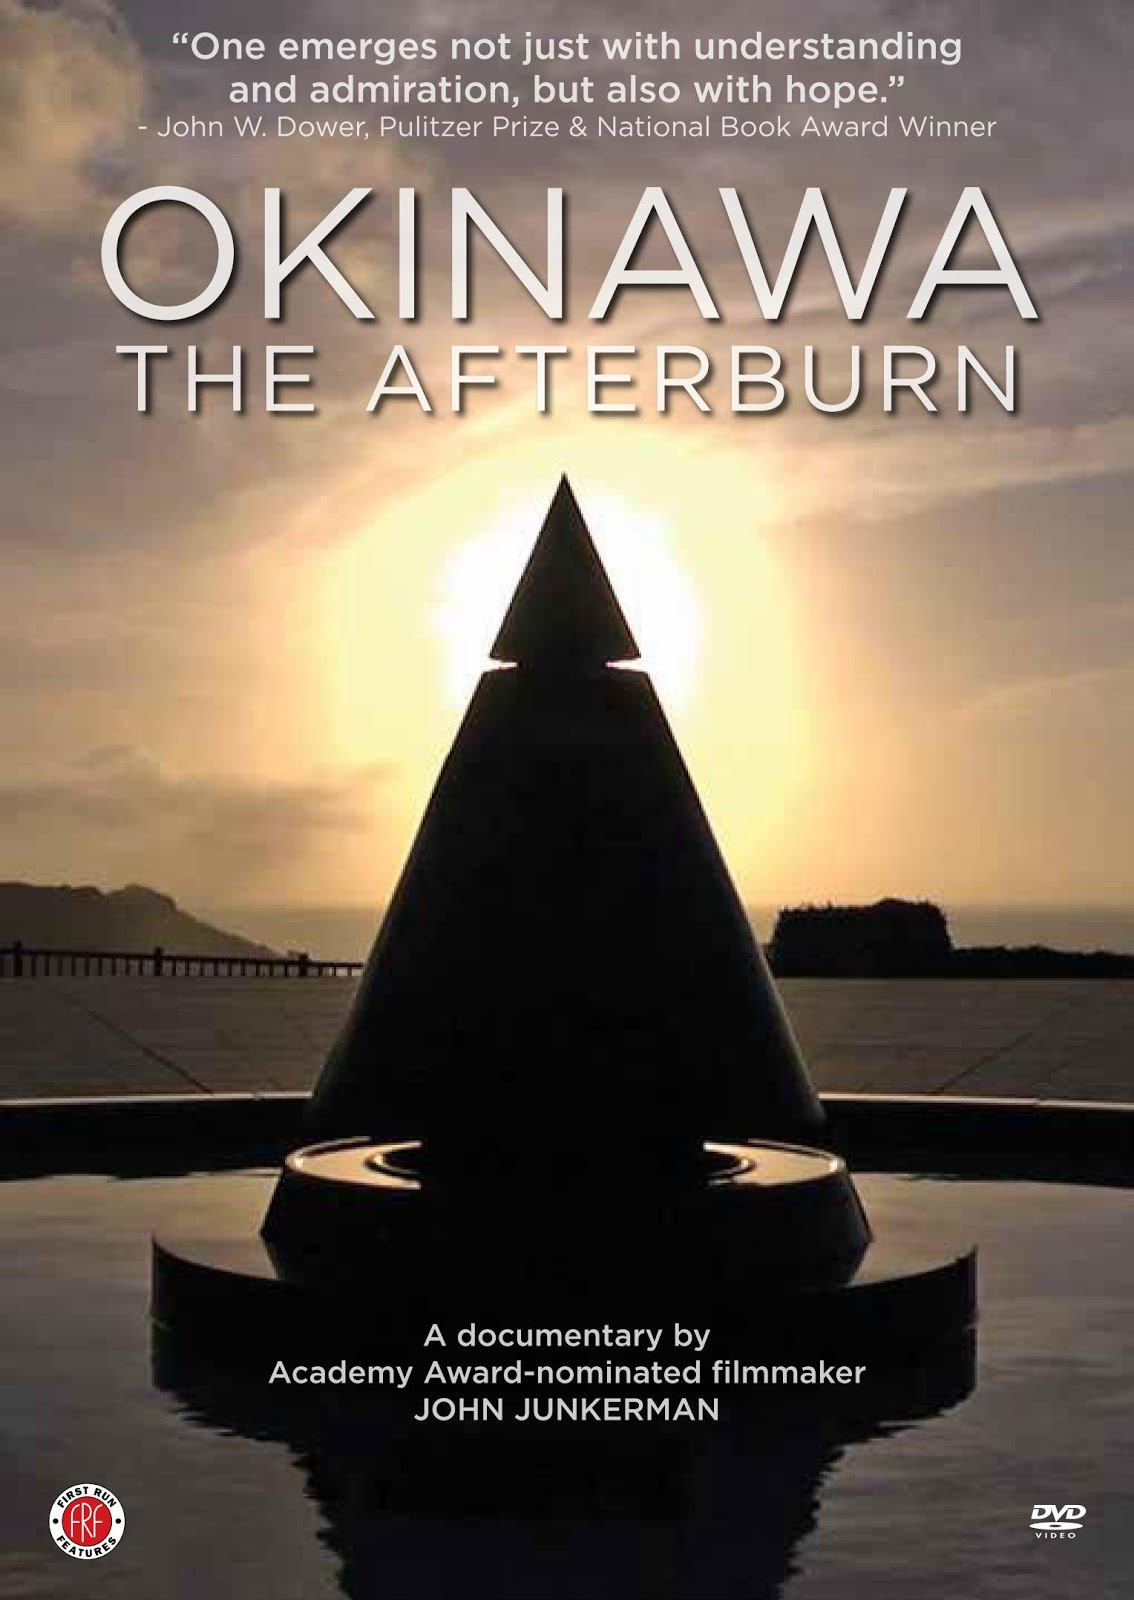 Film Okinawa: The Afterburn will come to Vancouver, BC!